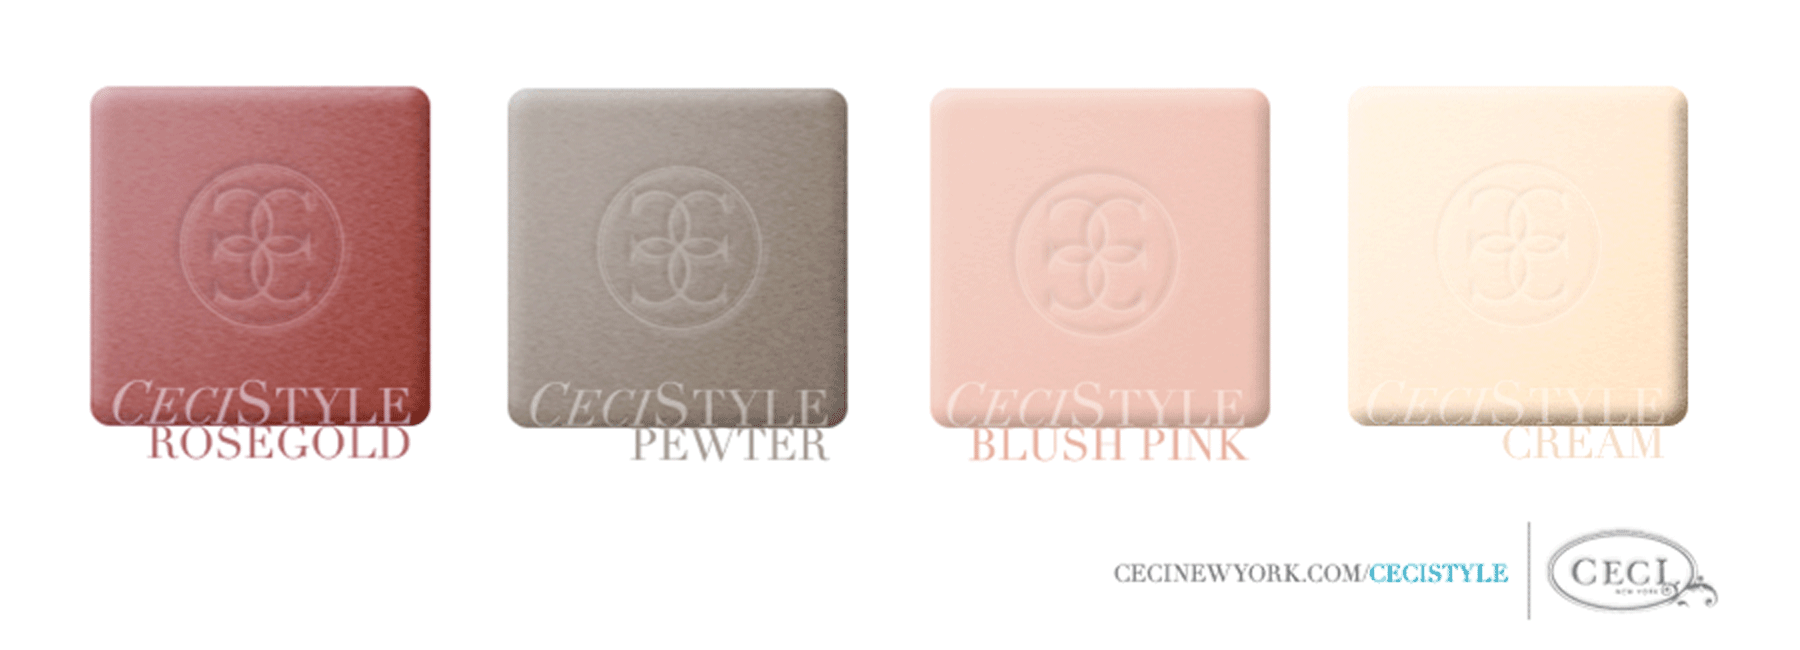 Ceci's Color Stories - Rose Gold & Blush Pink Wedding Colors - color swatches, rose gold, pewter, blush pink, cream, wedding